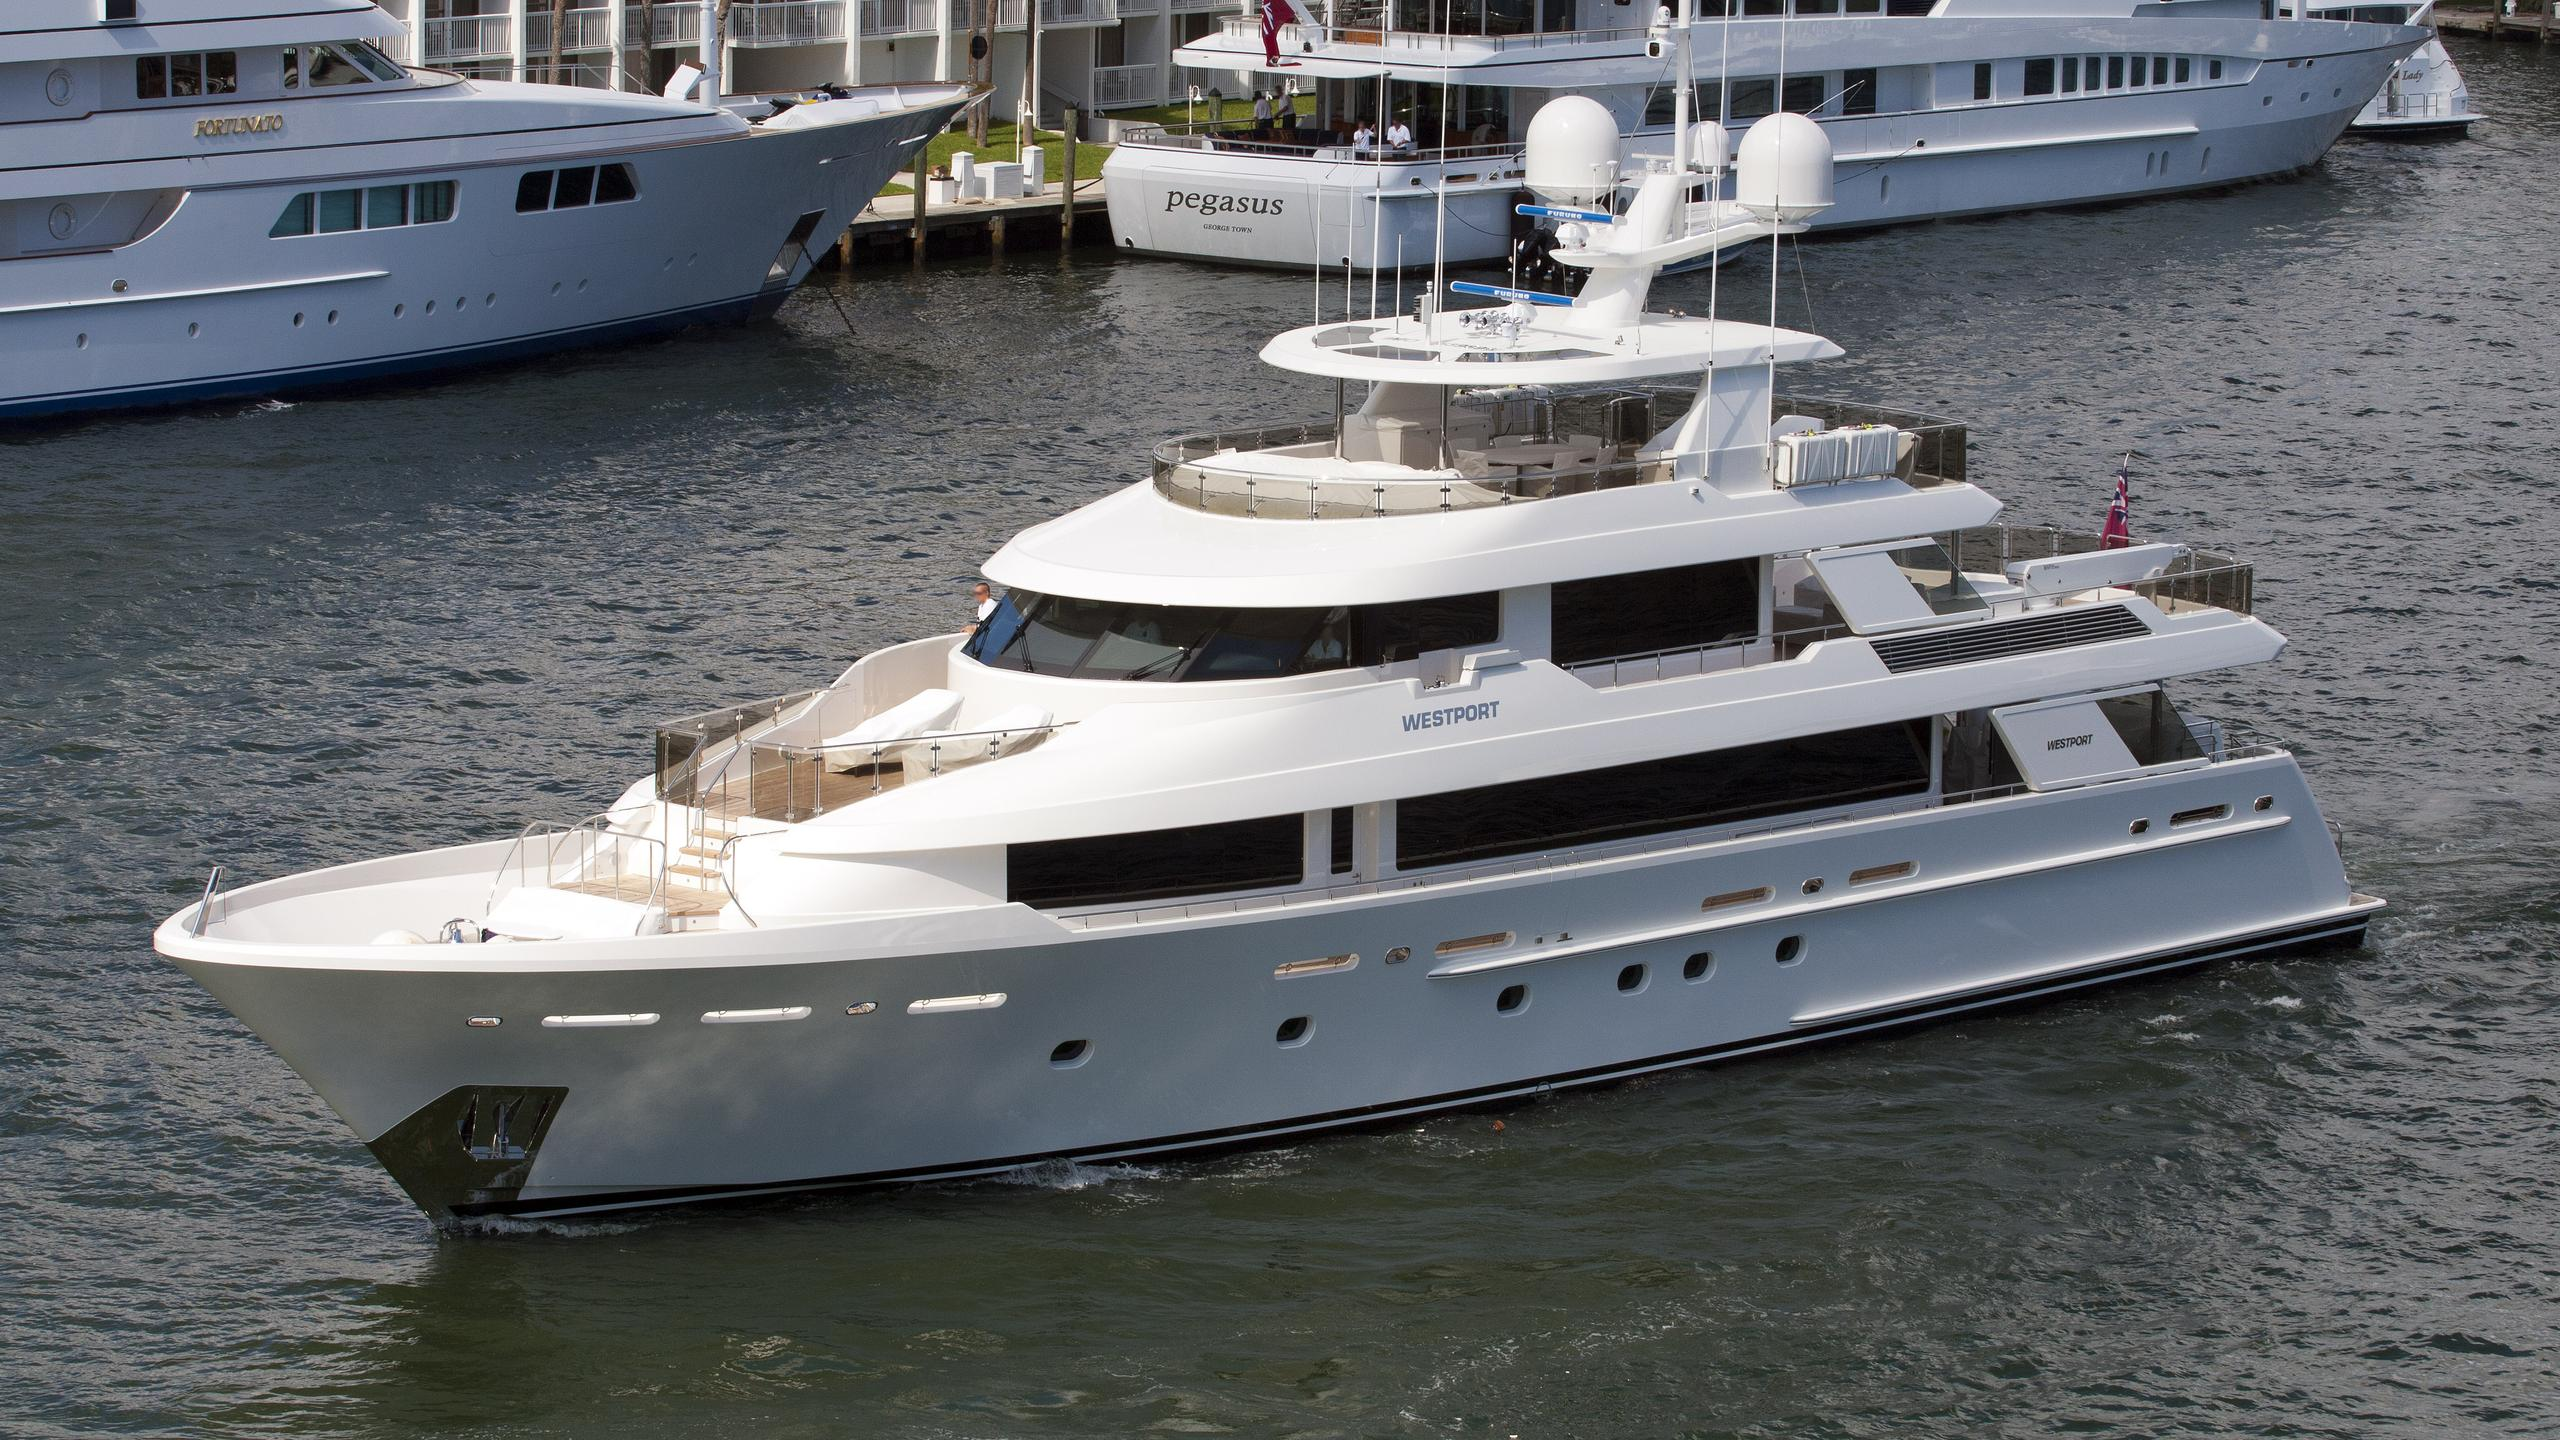 book-ends-motor-yacht-westport-130-2012-40m-half-profile